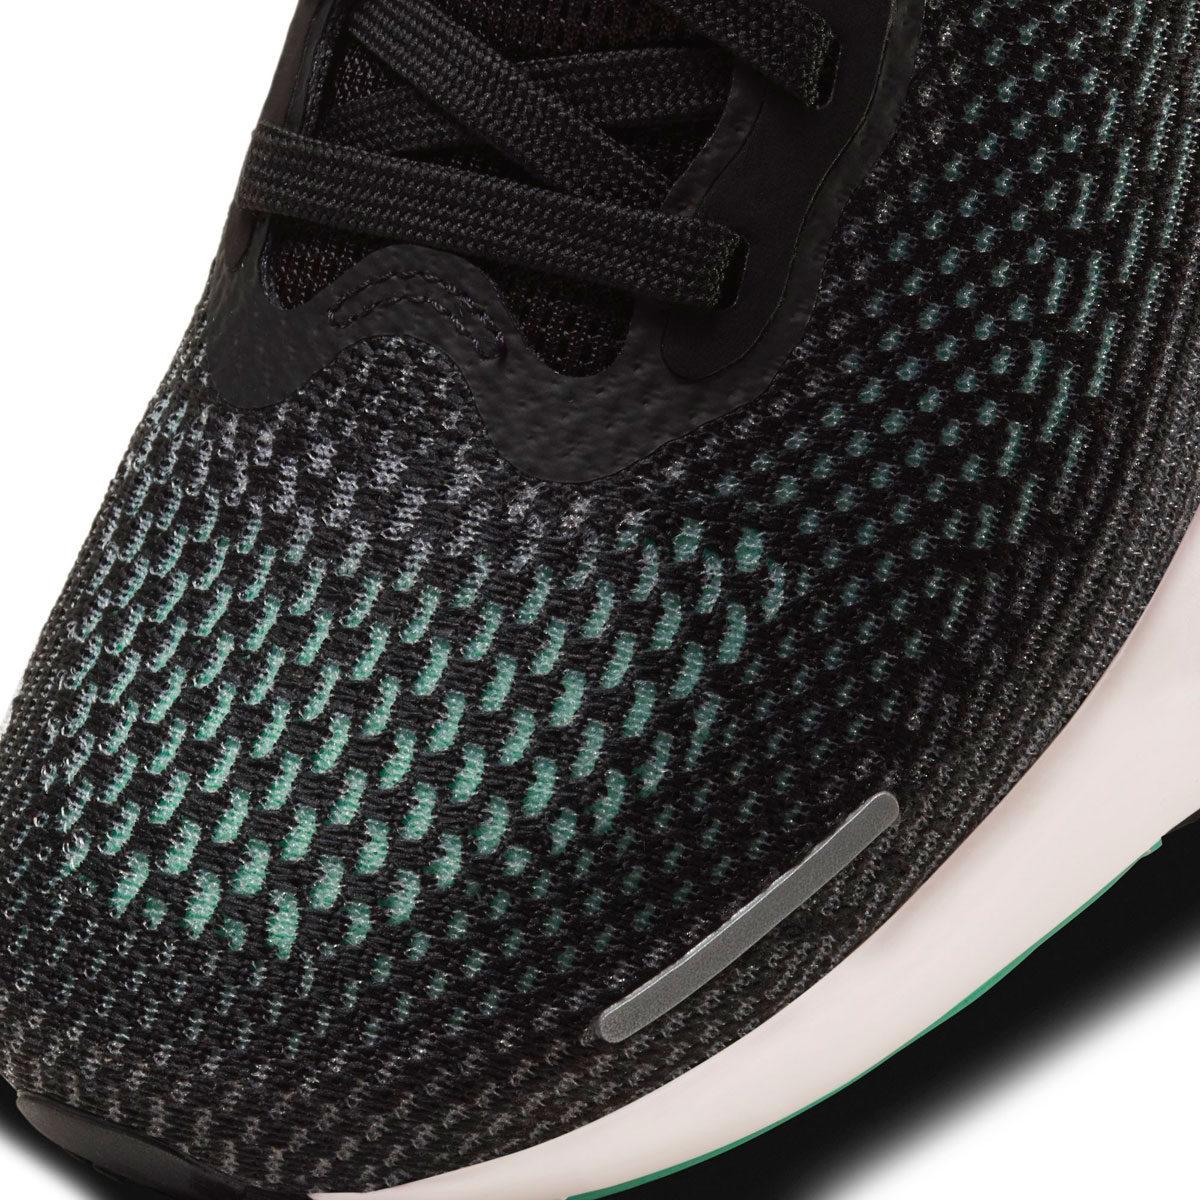 Men's Nike Zoomx Invincible Run FlyKnit Running Shoe - Color: Black/Green Glow/Chile Red - Size: 6 - Width: Regular, Black/Green Glow/Chile Red, large, image 6